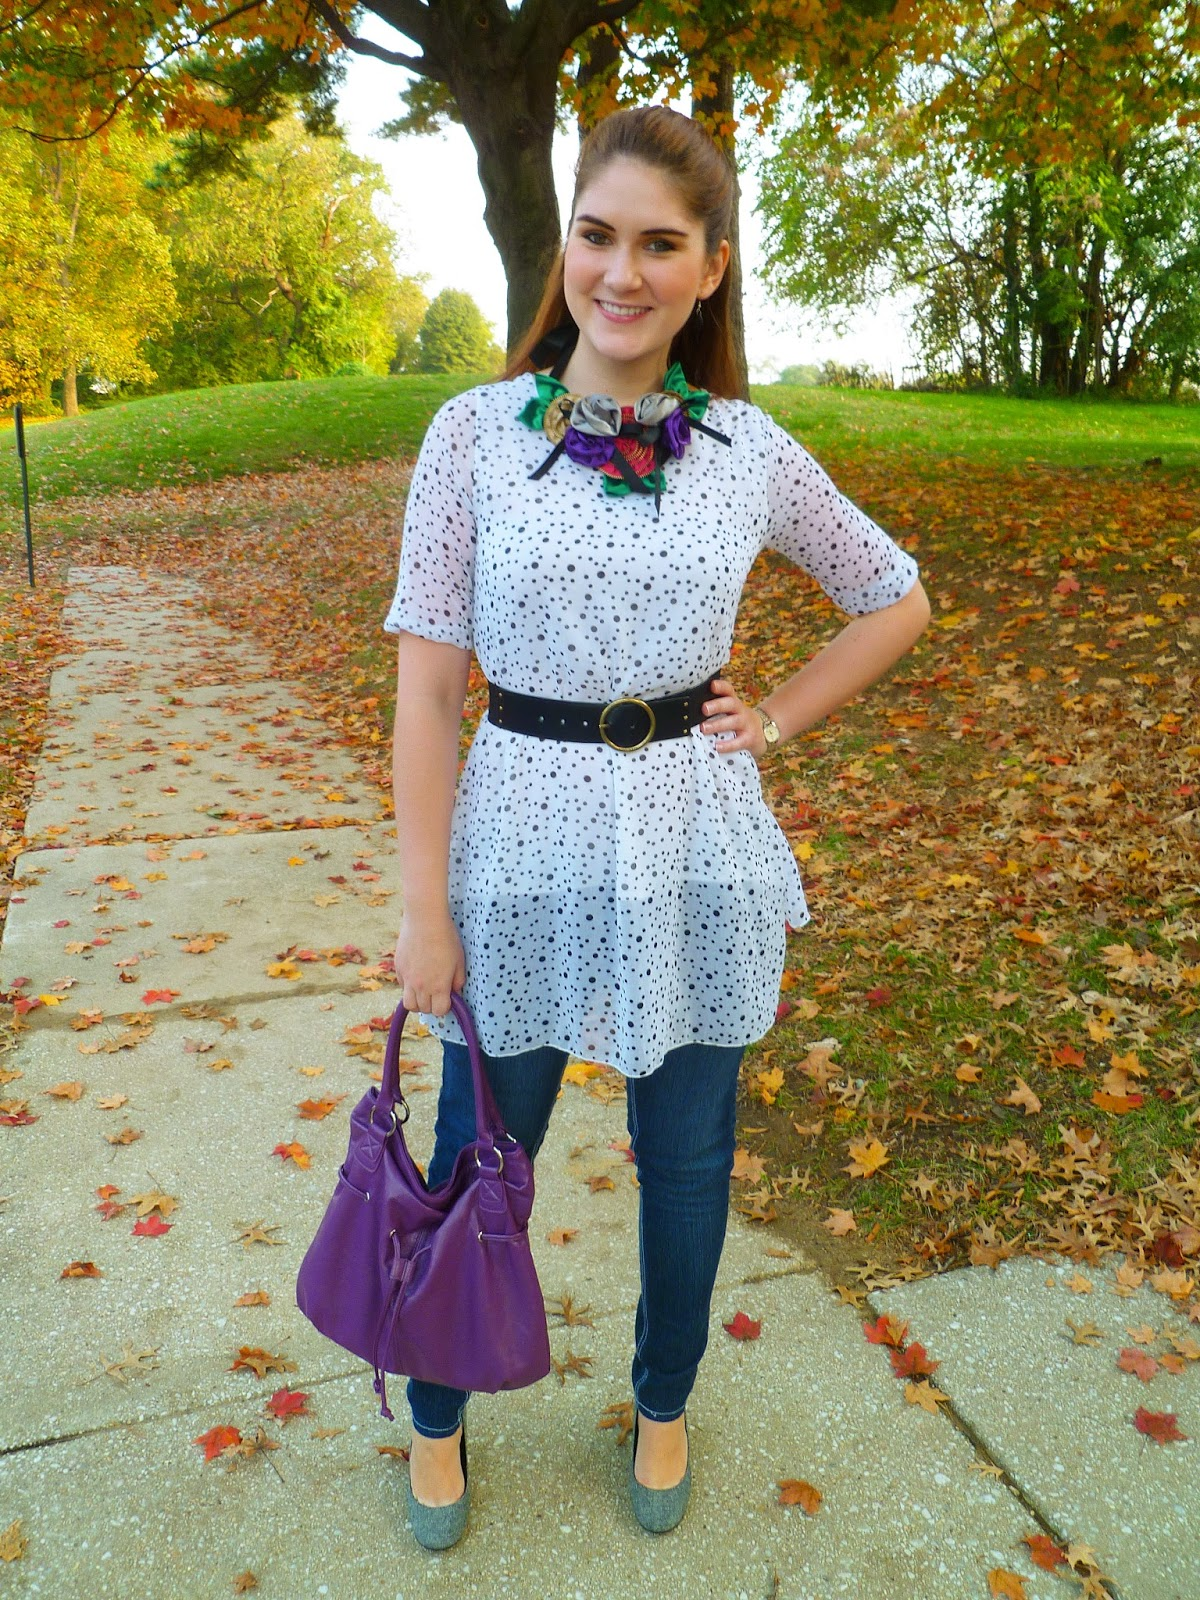 The Joy Of Fashion Tips 25 Cute Fall Outfit Ideas